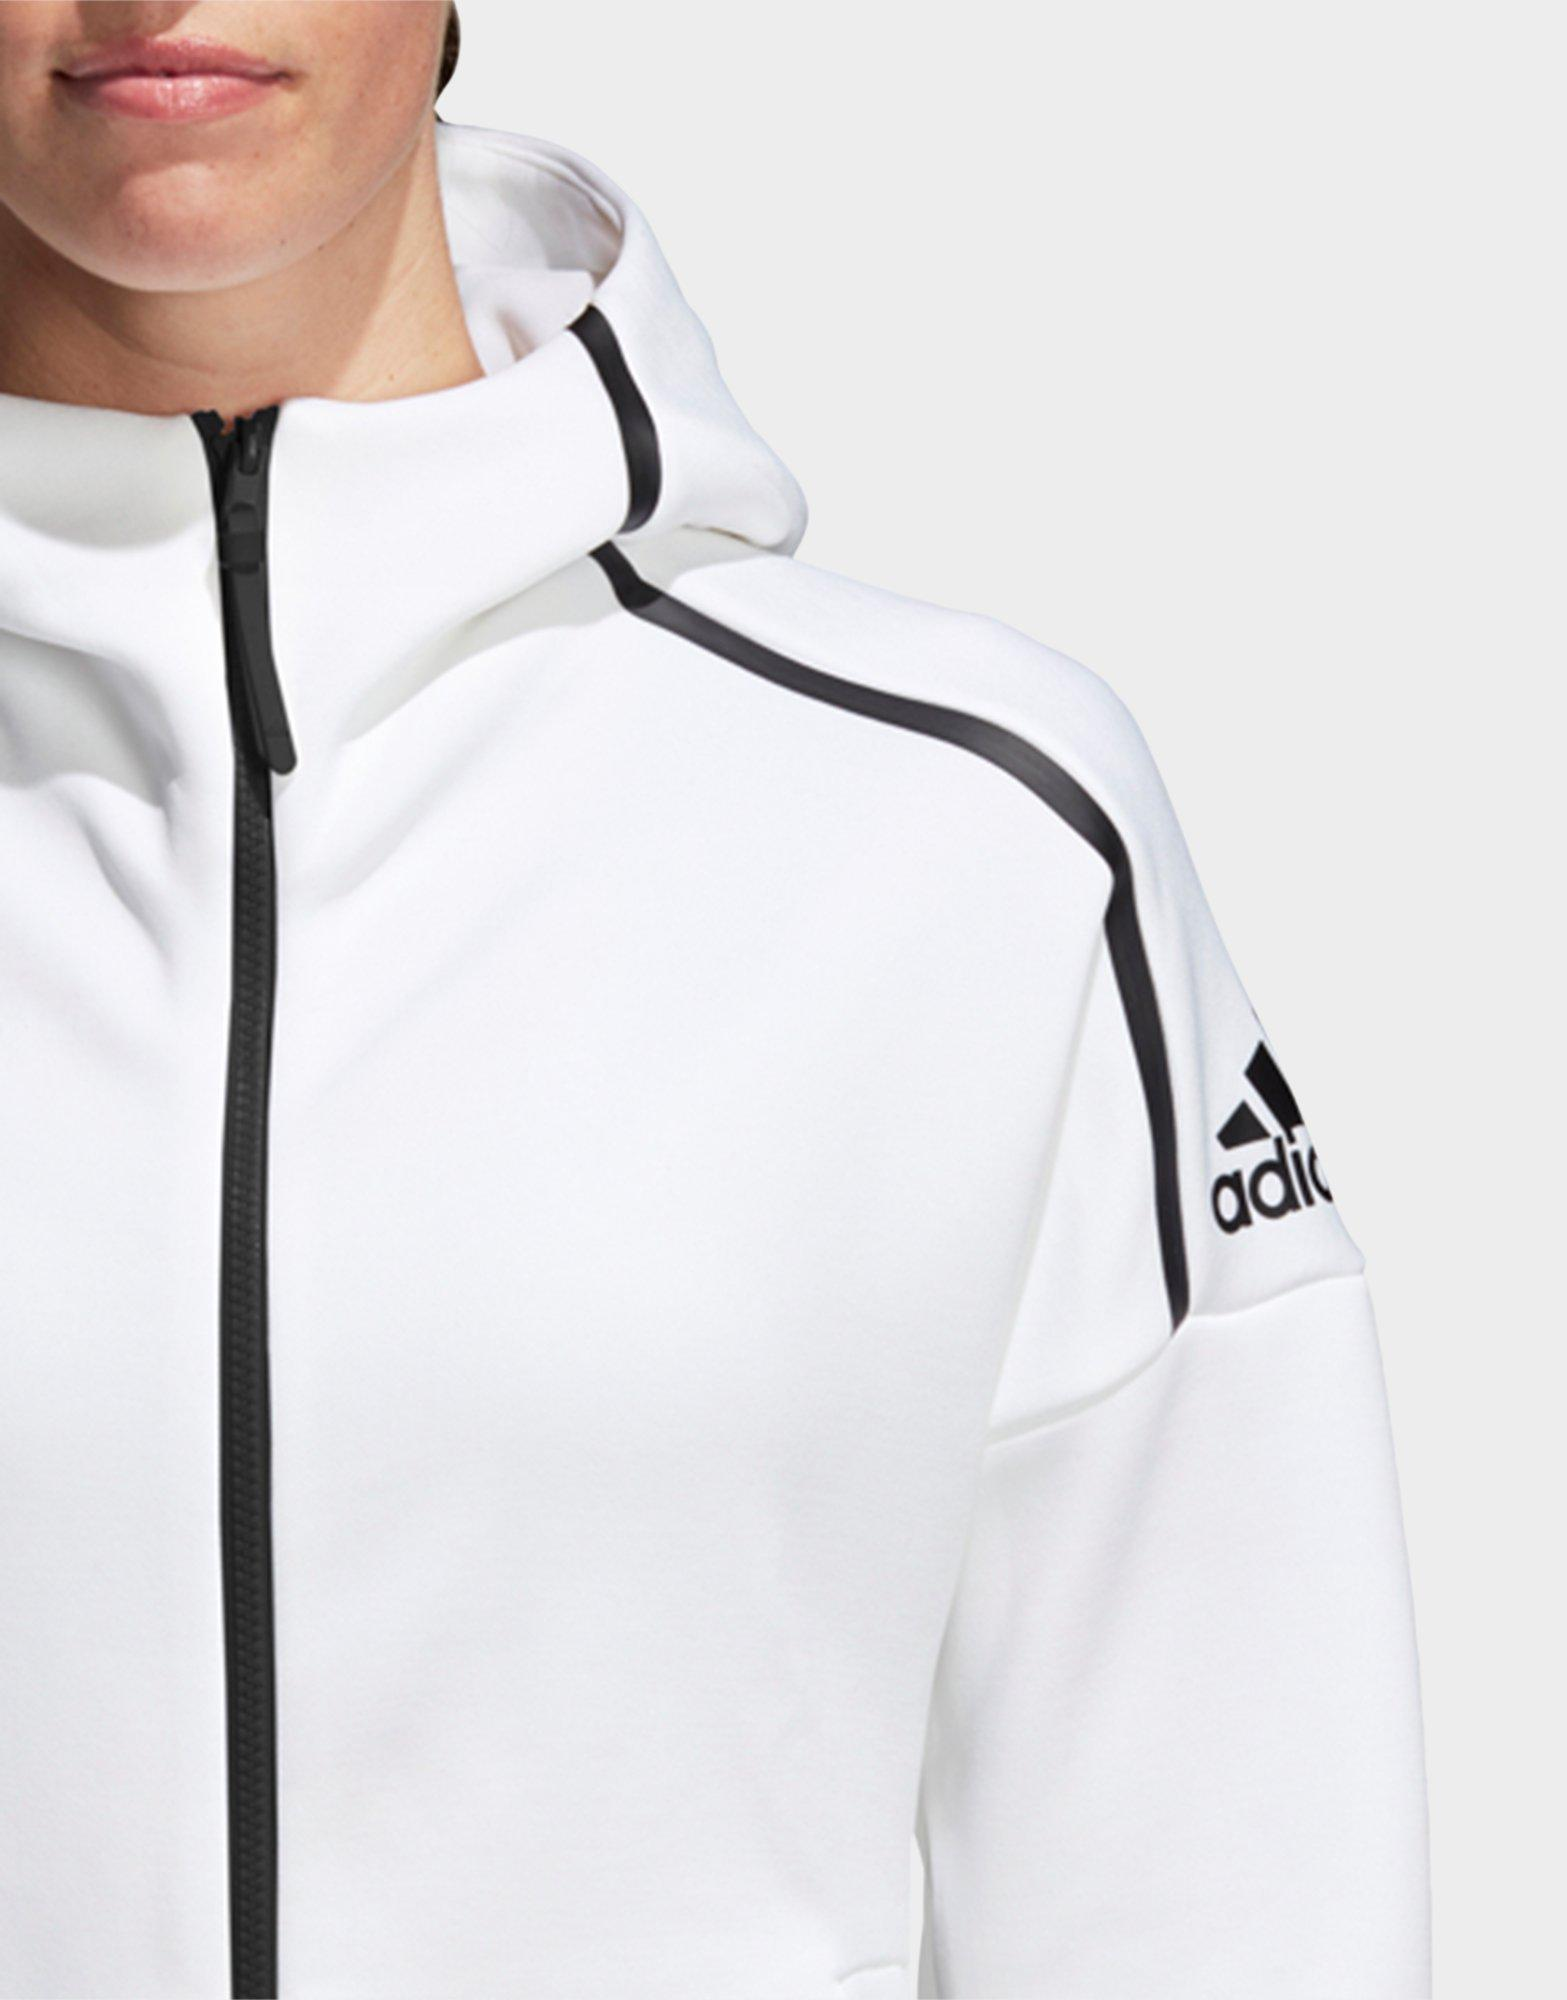 adidas z.n.e. hoodie fast release